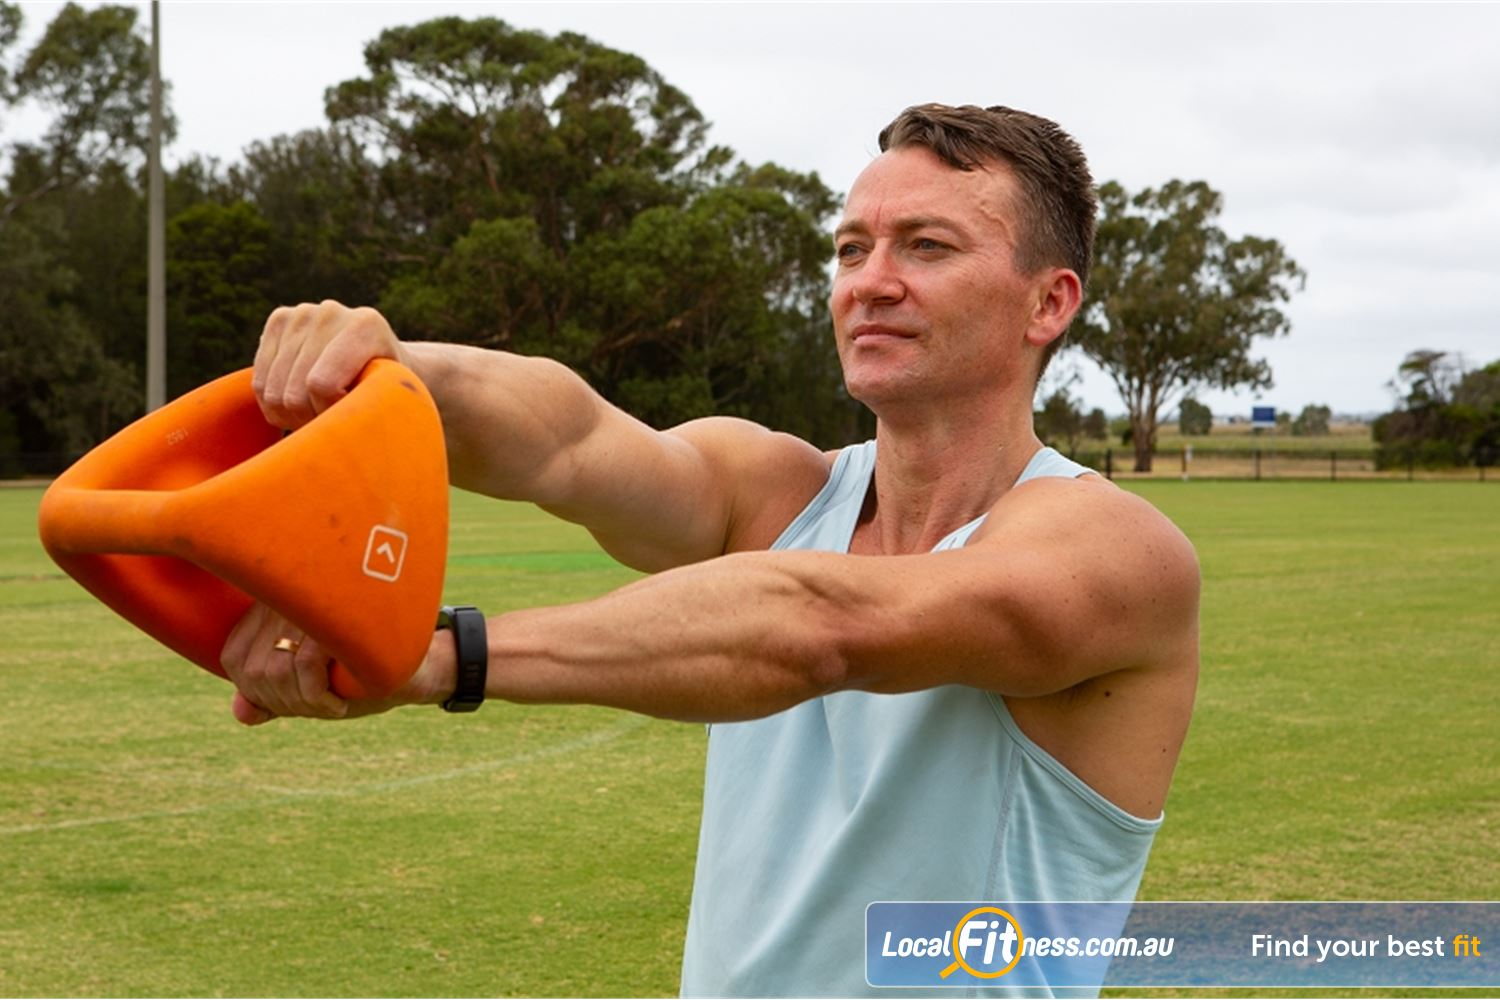 Step into Life Graceville Challenge your fitness with our Graceville High Intesnity Invertal Training classes.